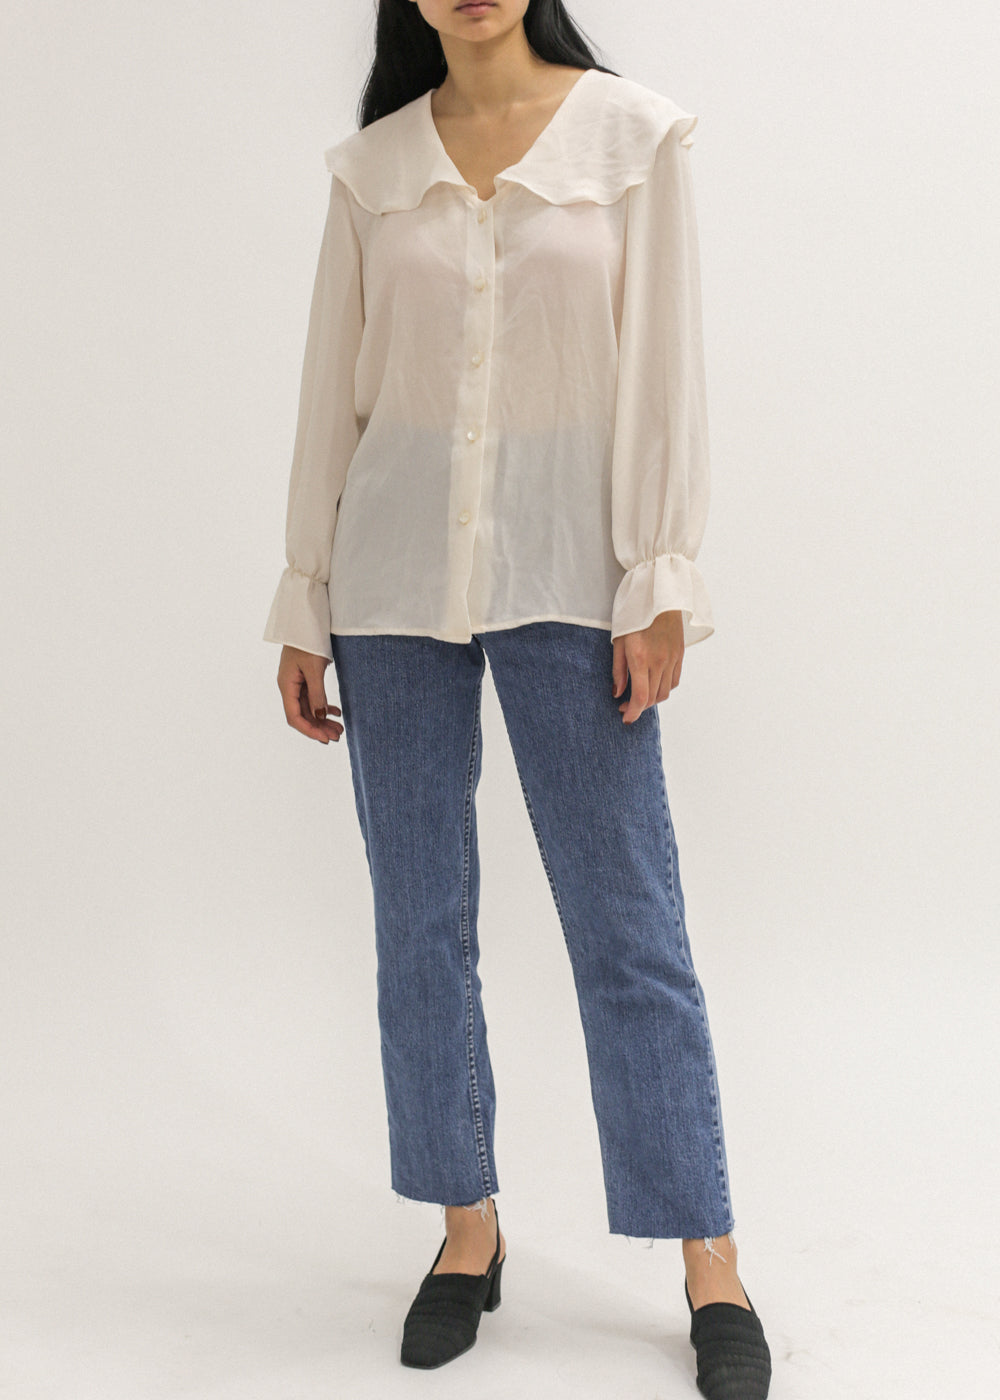 Vintage Semi-Sheer Ruffle Blouse